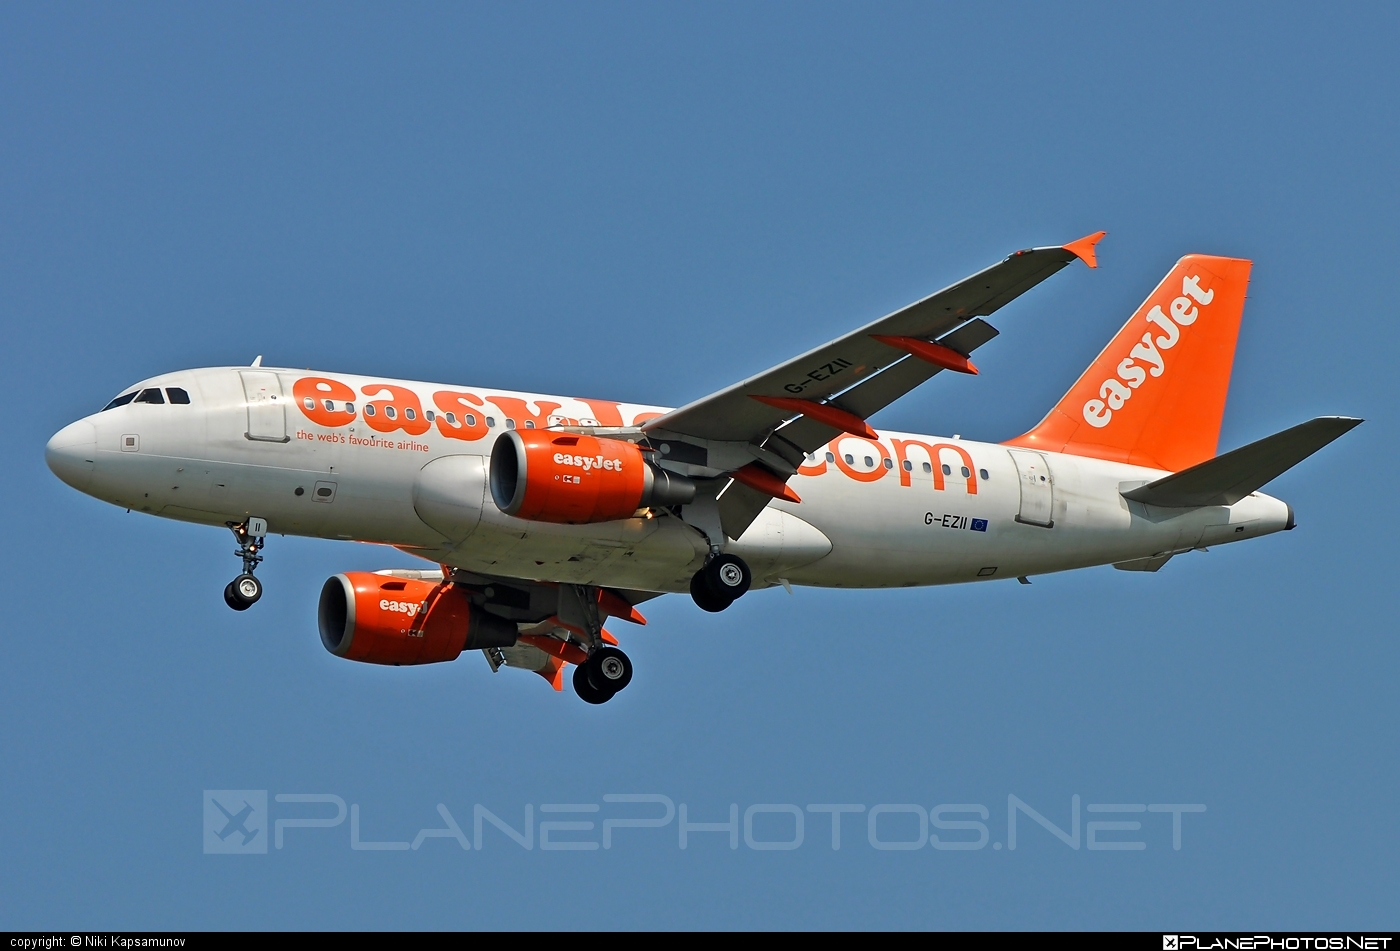 Airbus A319-111 - G-EZII operated by easyJet #a319 #a320family #airbus #airbus319 #easyjet